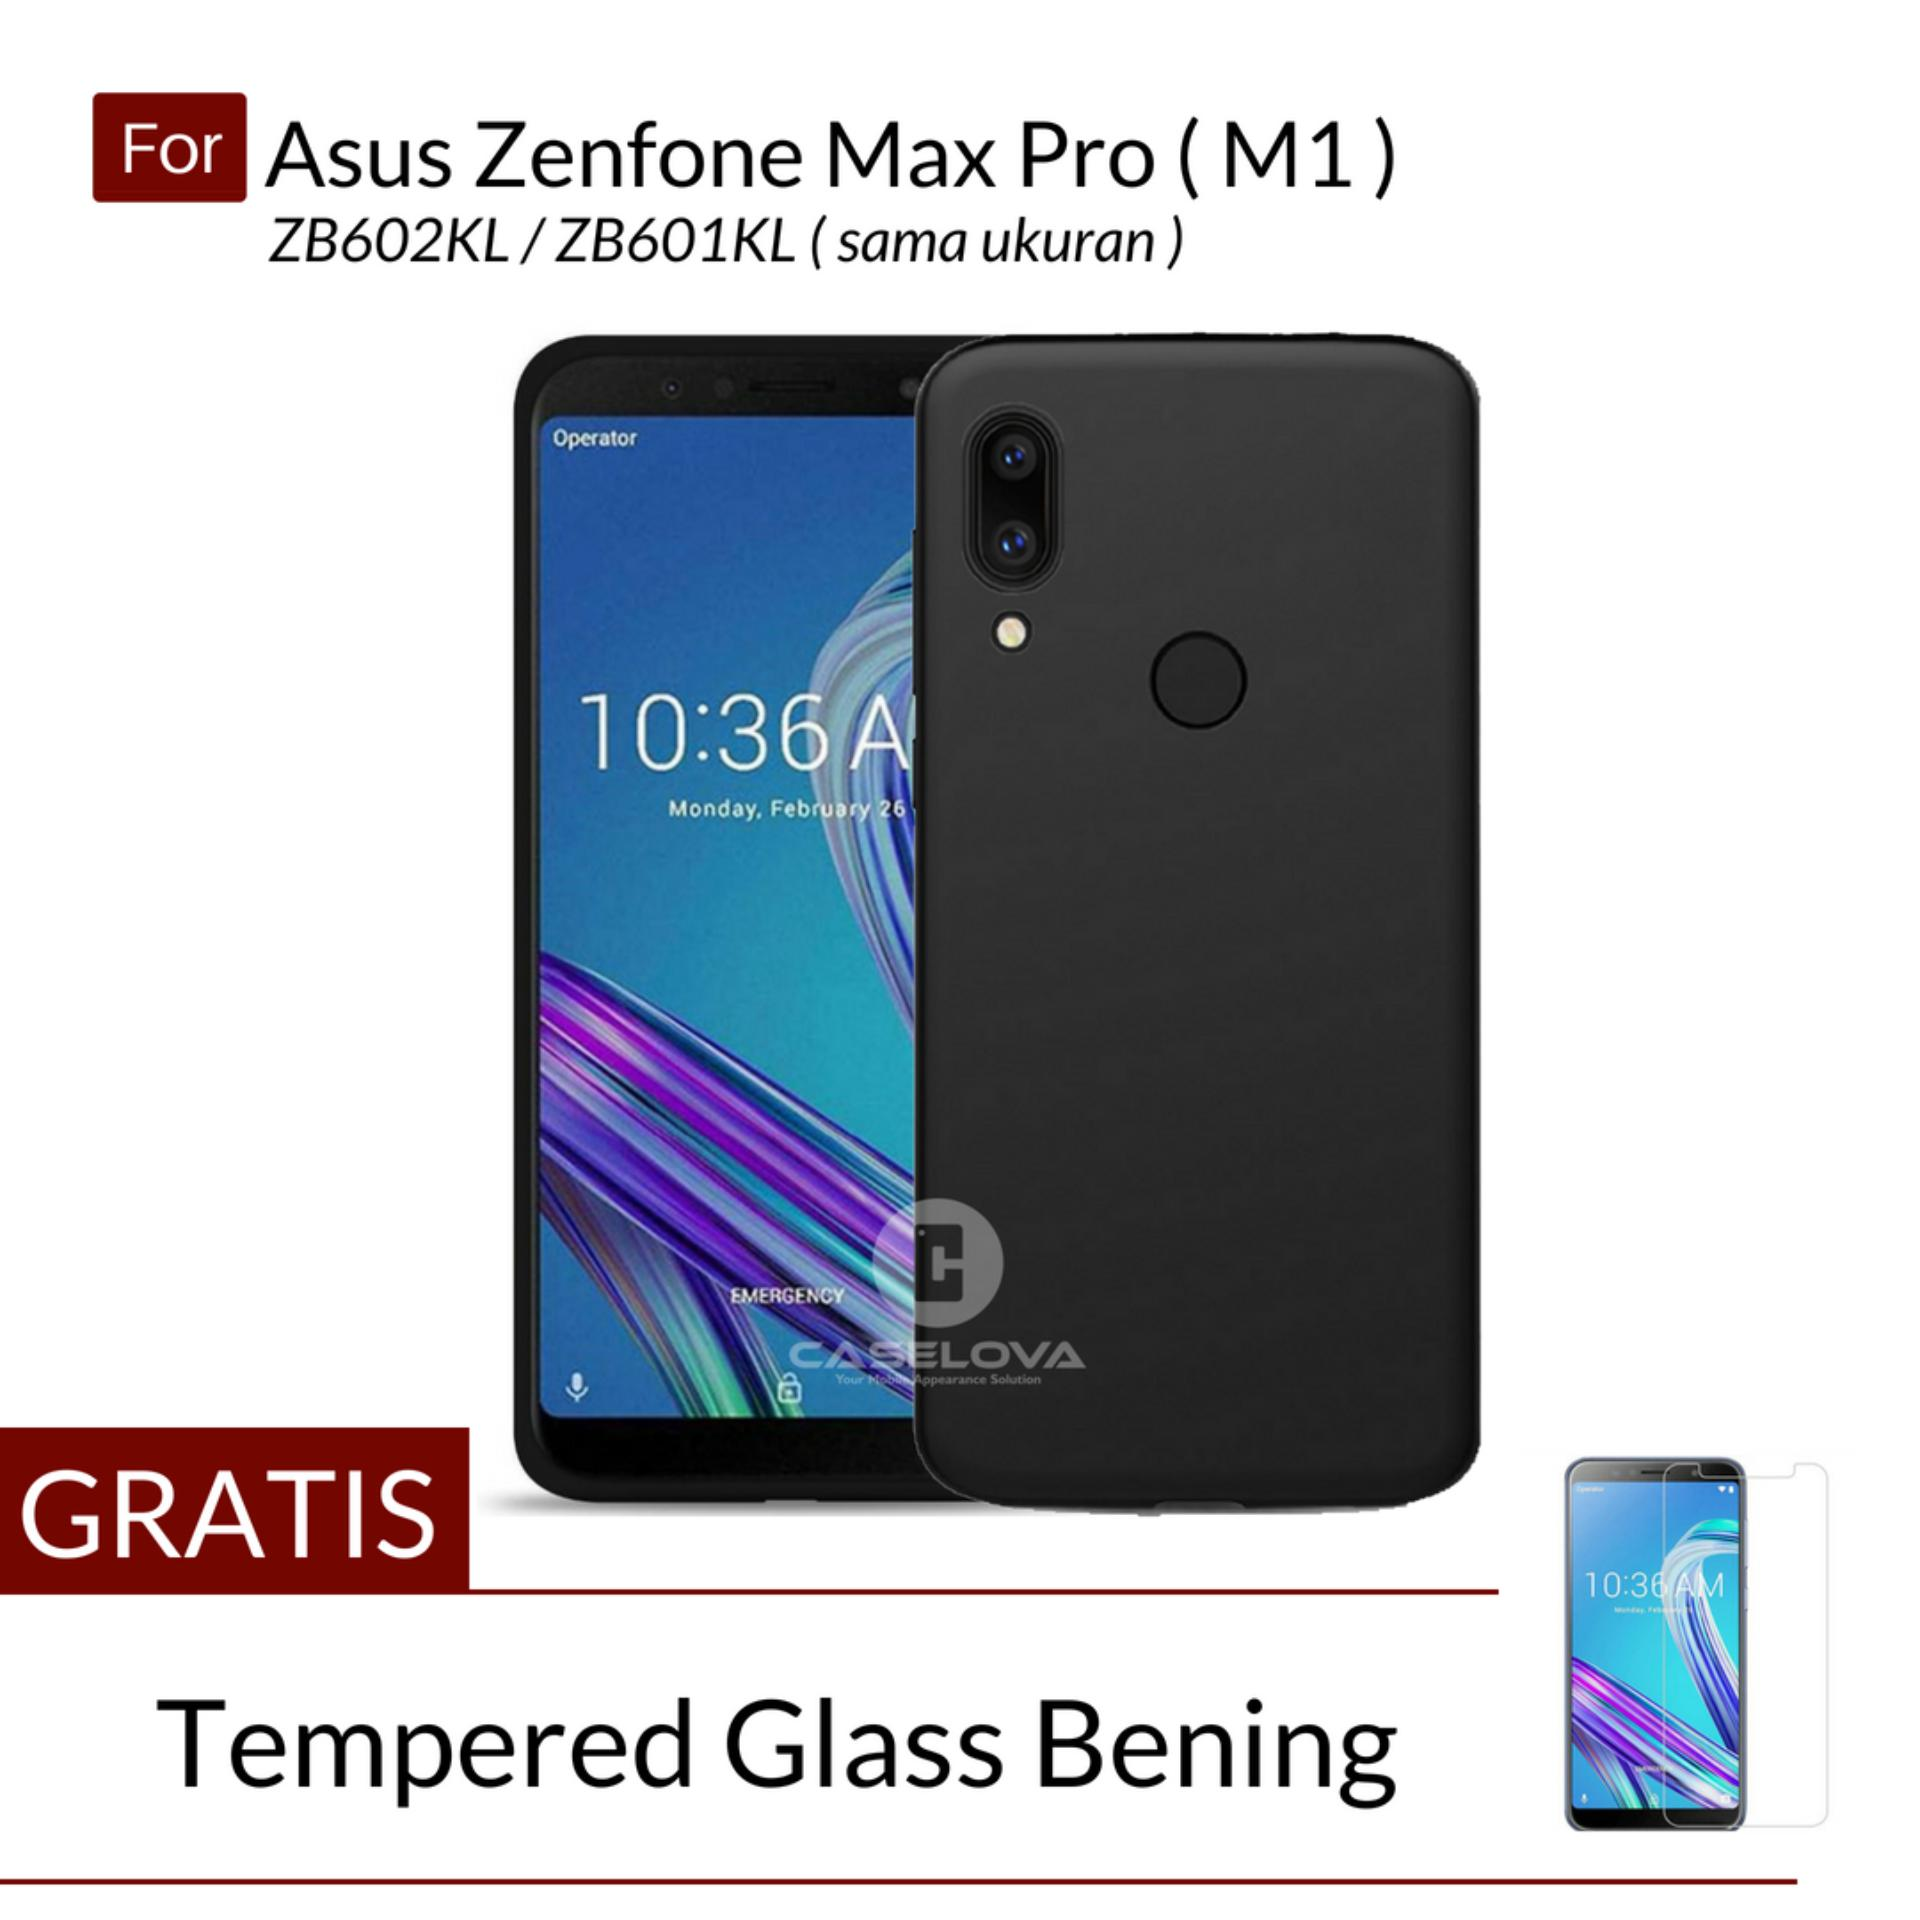 Caselova UltraSlim Black Matte Hybrid Case for Asus Zenfone Max Pro (M1) ZB602KL / ZB601KL - Black + Gratis Tempered Glass Bening